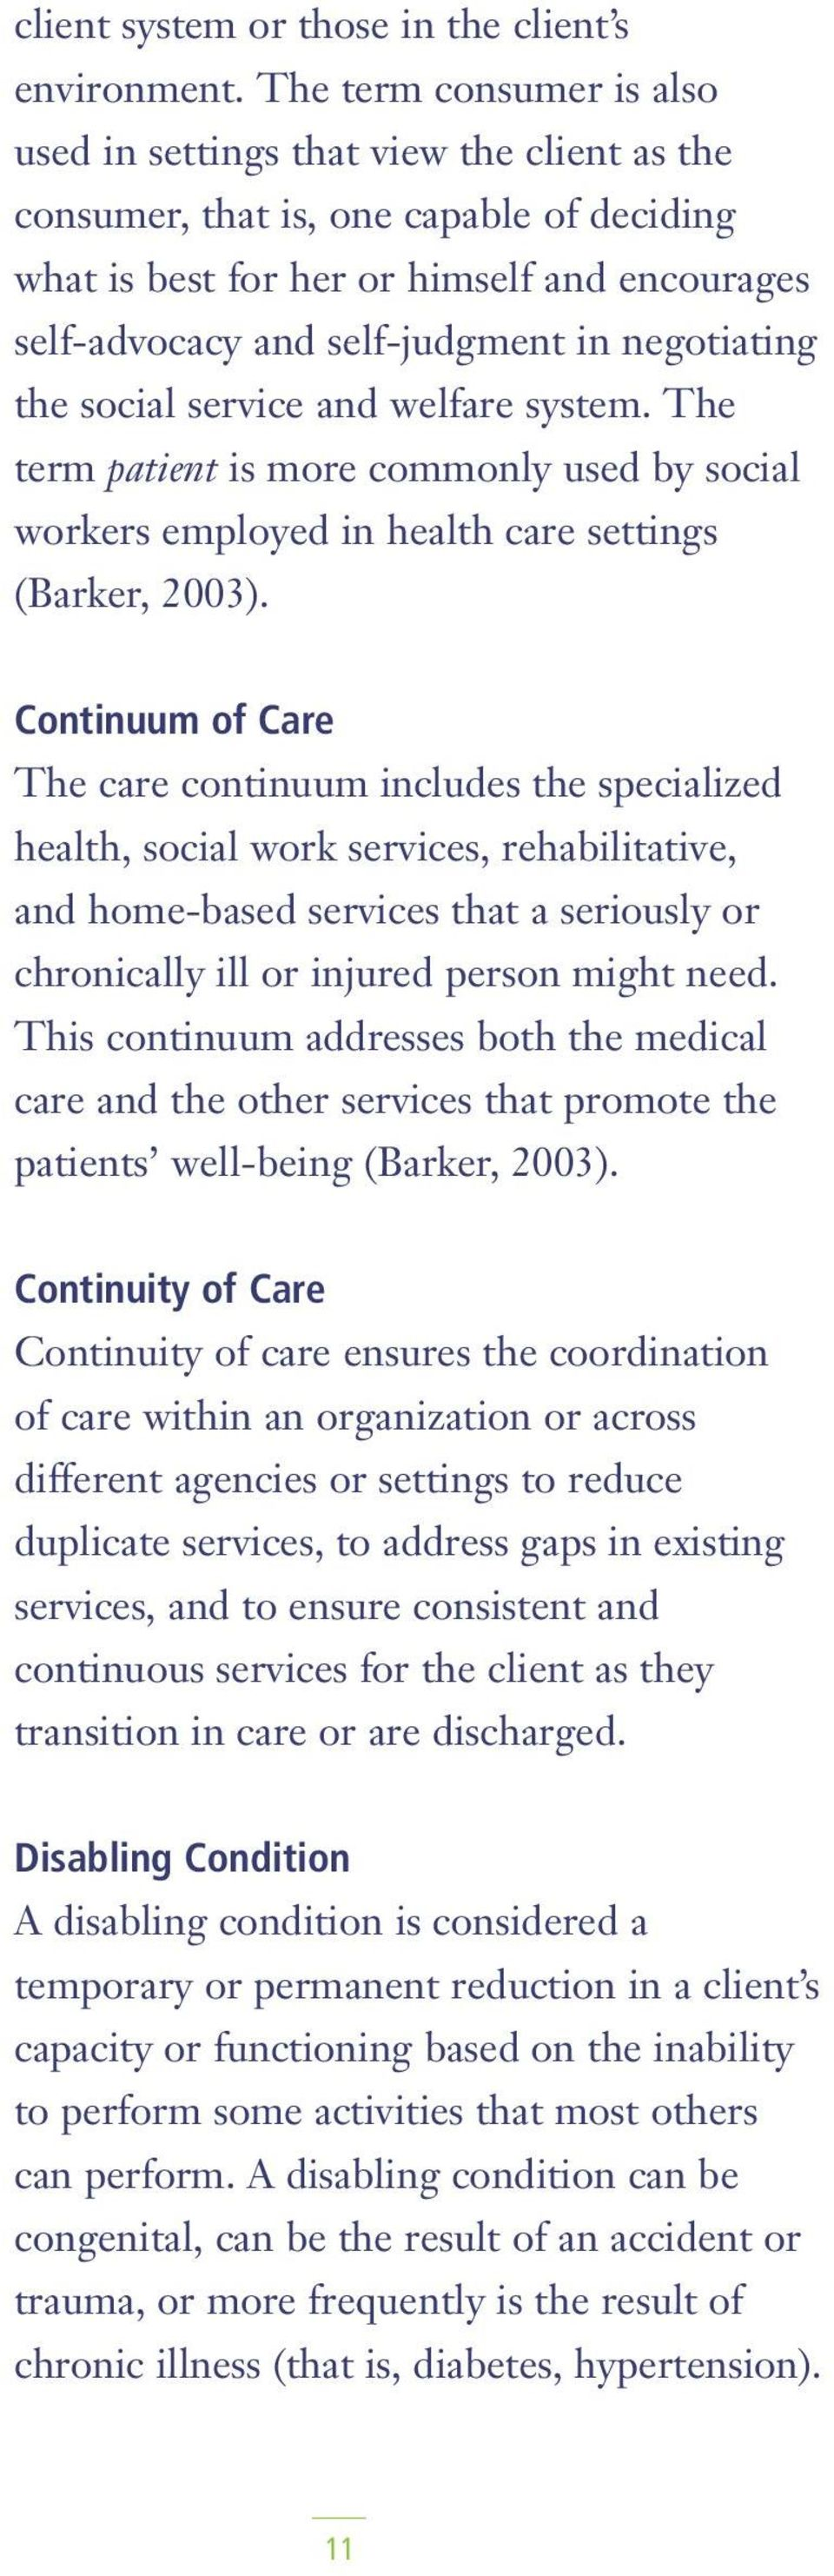 negotiating the social service and welfare system. The term patient is more commonly used by social workers employed in health care settings (Barker, 2003).